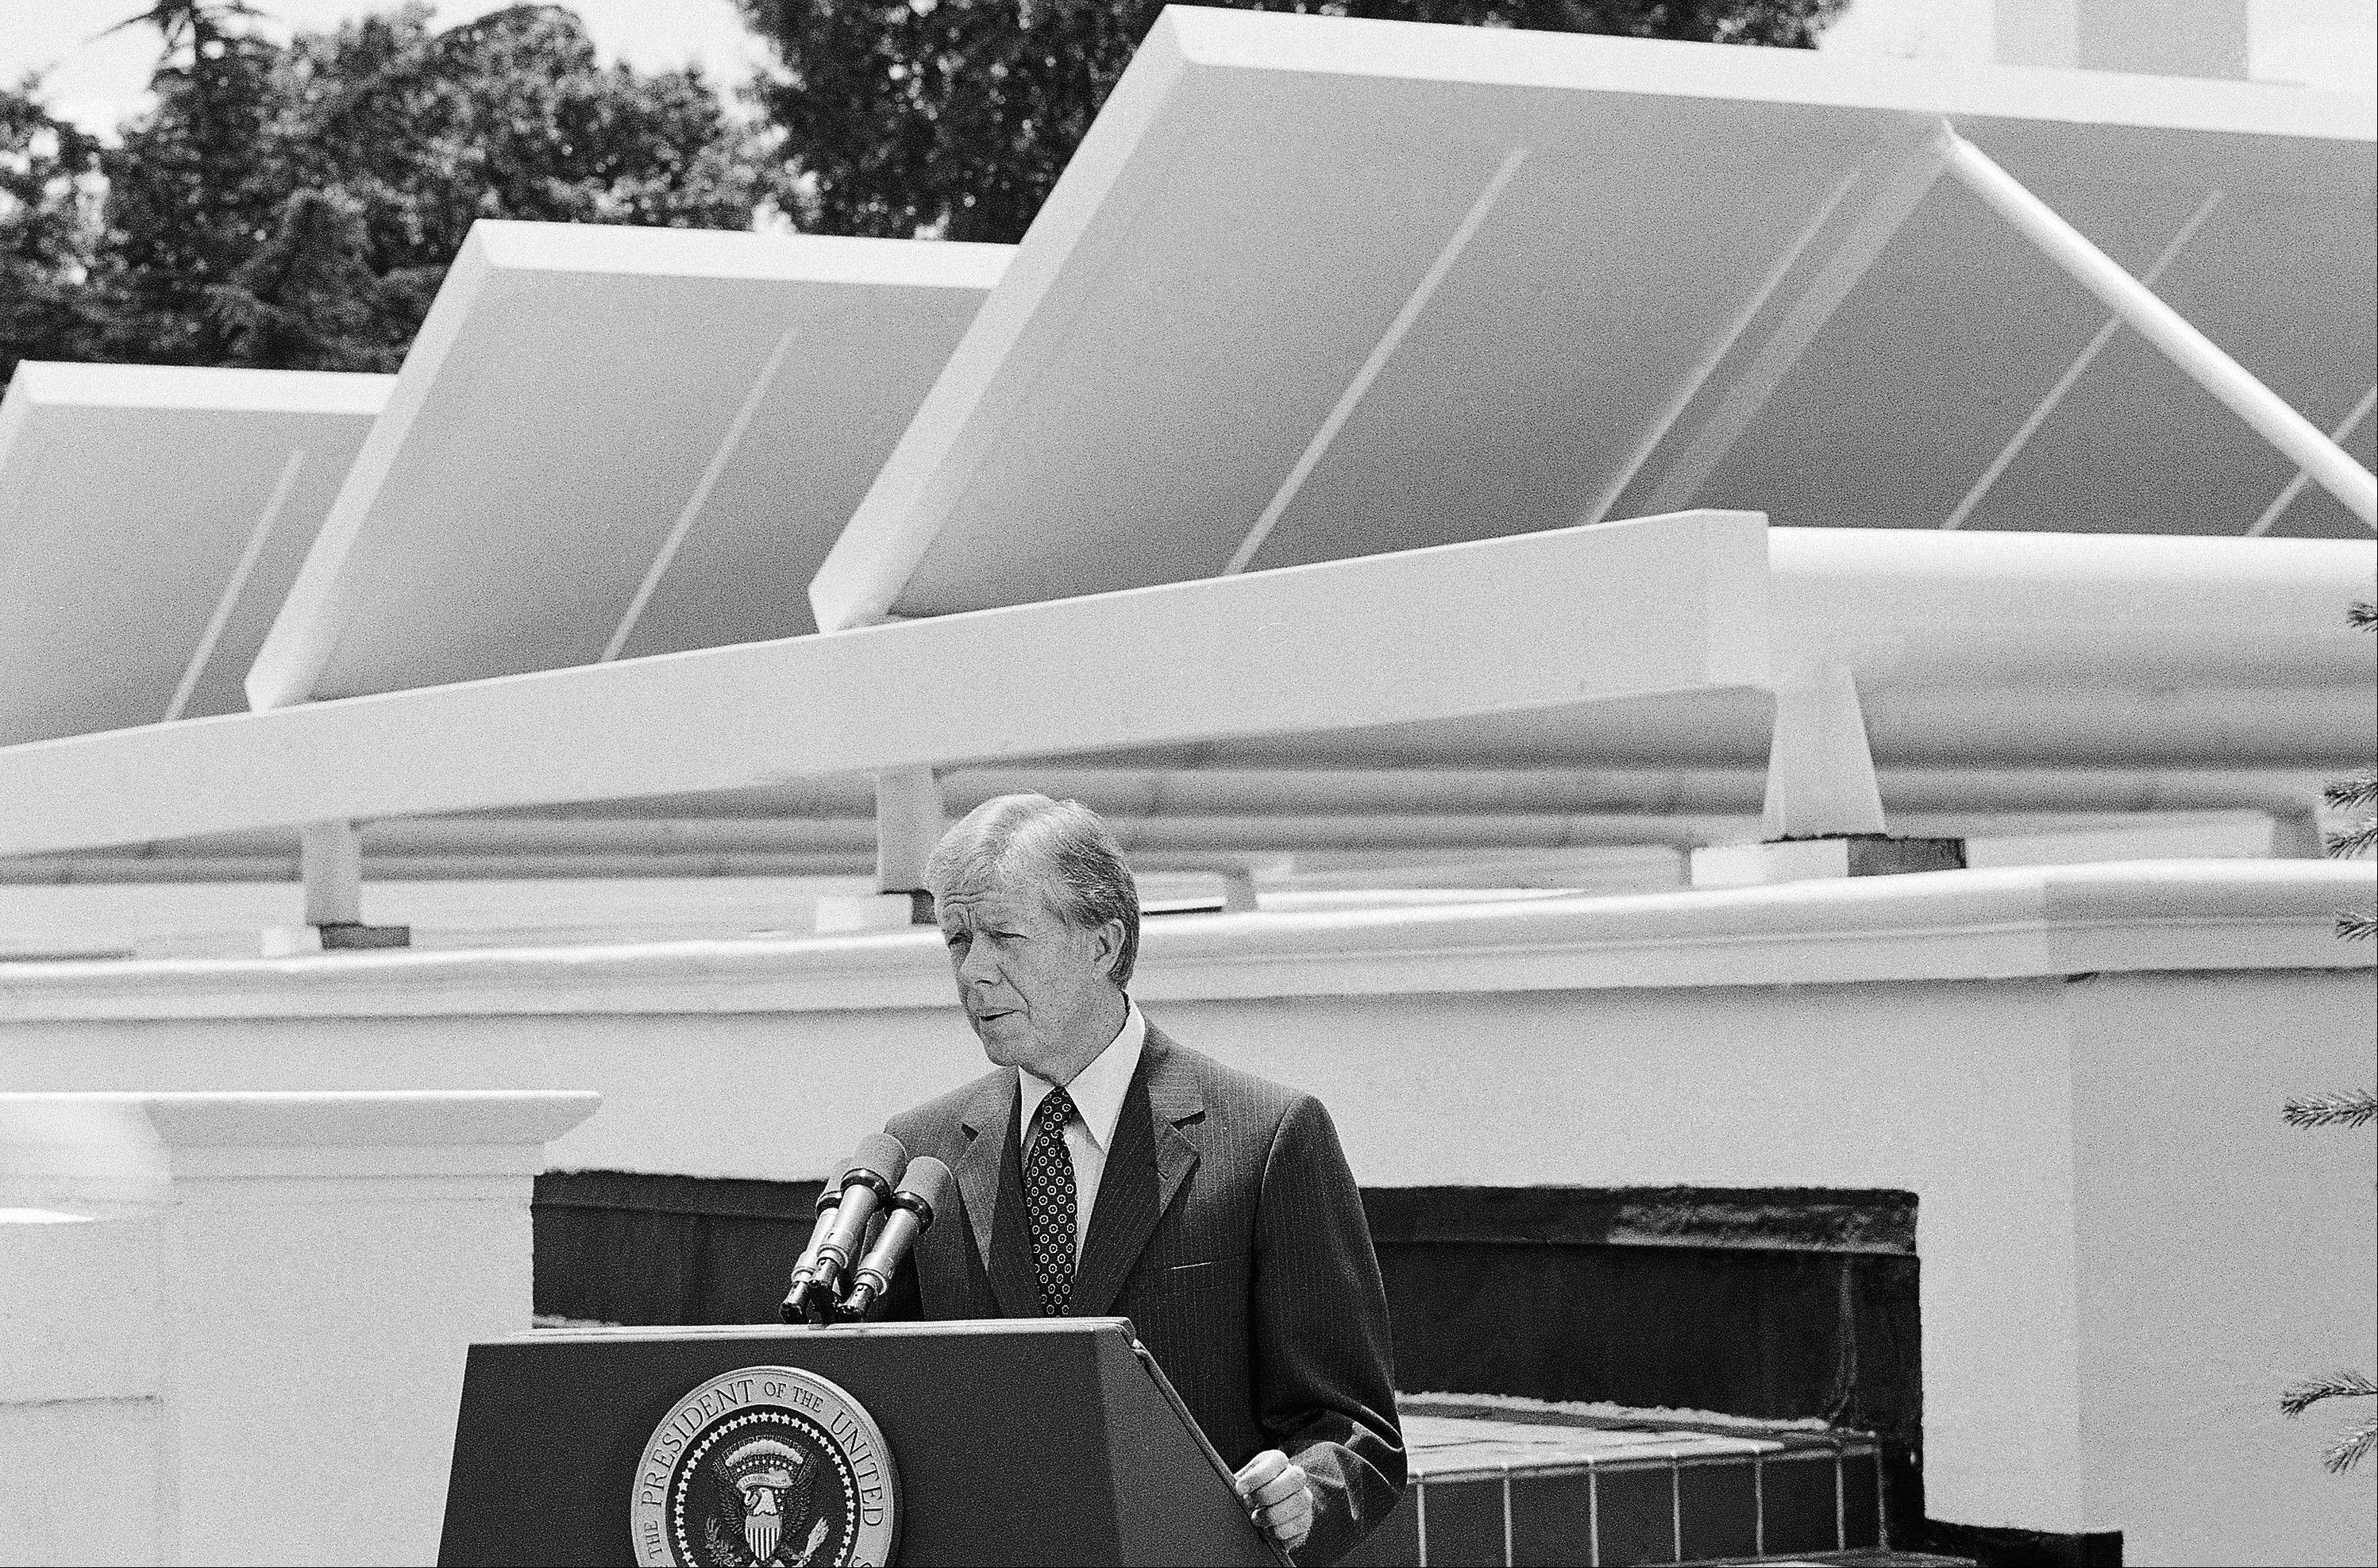 President Jimmy Carter speaks against a backdrop of solar panels at the White House in 1979. Last October, the Obama administration announced plans to install solar panels on the roof on the roof of the White House by the spring of this year, returning the power of the sun to the pinnacle of prominence a quarter-century after Jimmy Carter's pioneering system was taken down. But spring has come and gone, and the promised panels have yet to see the light of day.